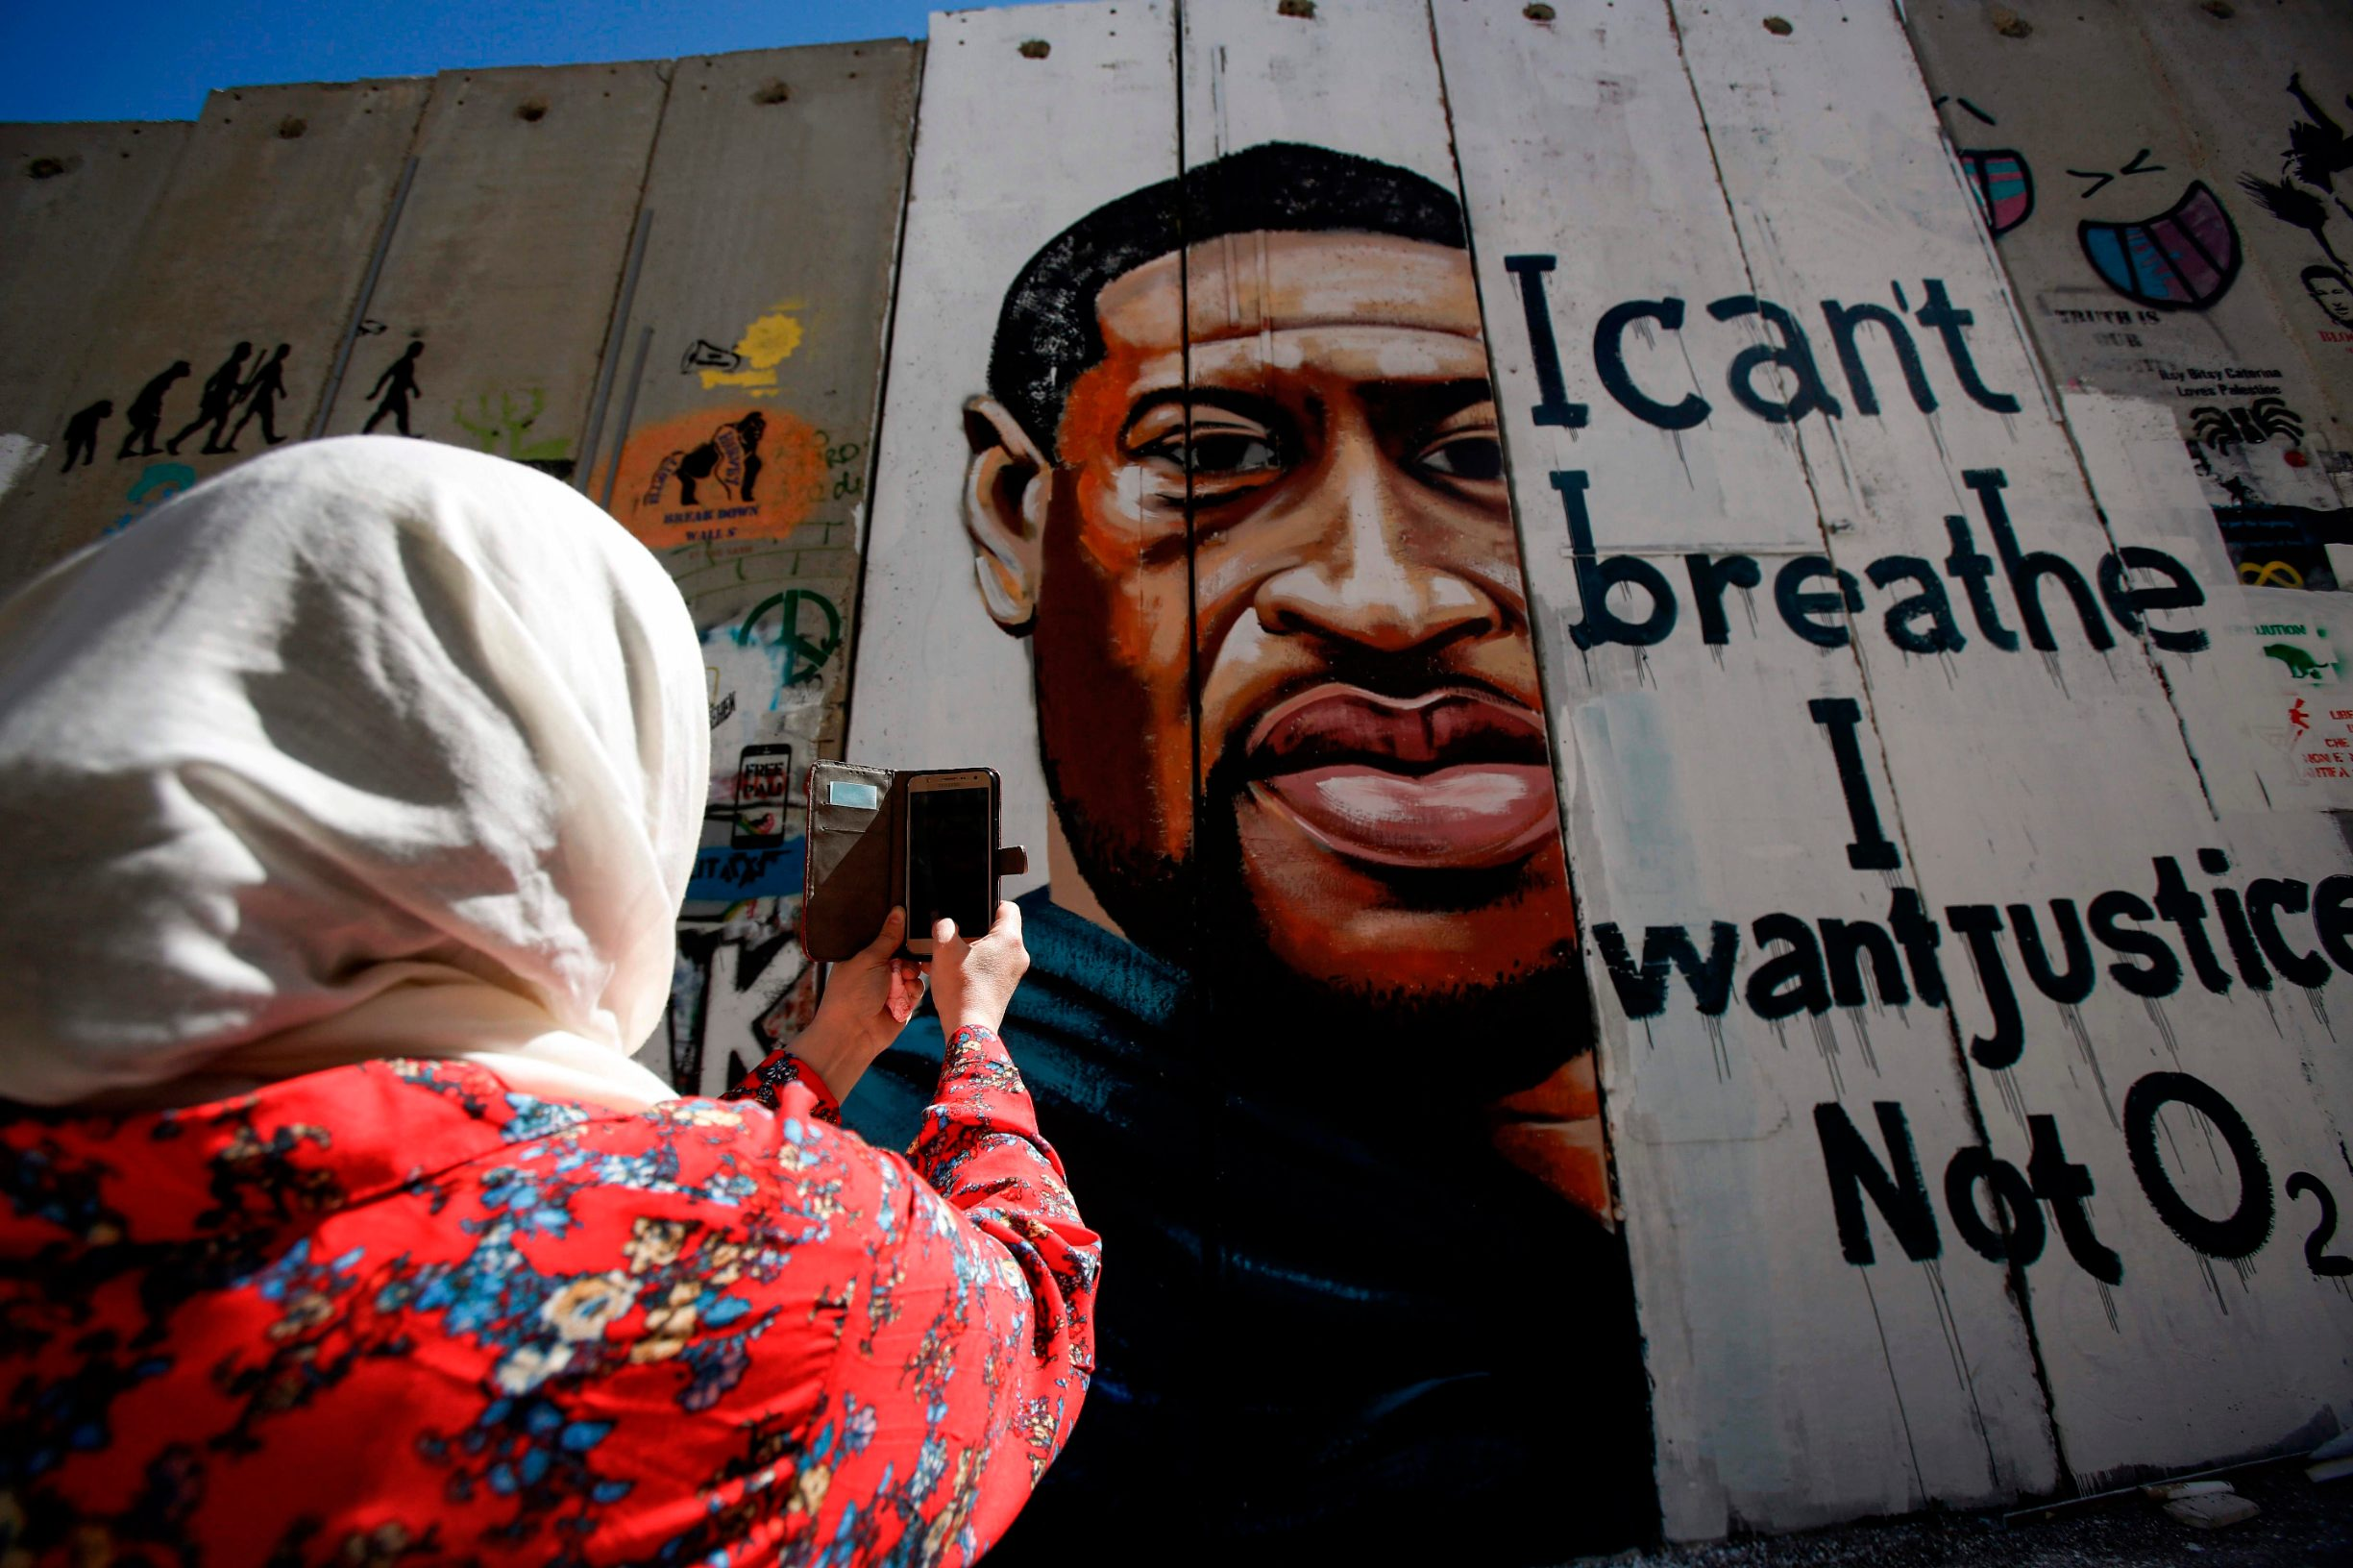 A woman uses her phone to photograph a mural showing the face of George Floyd, an unarmed black man who died after a white policeman knelt on his neck during an arrest in the US, painted on a section of Israel's controversial separation barrier in the city of Bethlehem in the occupied West Bank on June 10, 2020, with text reading